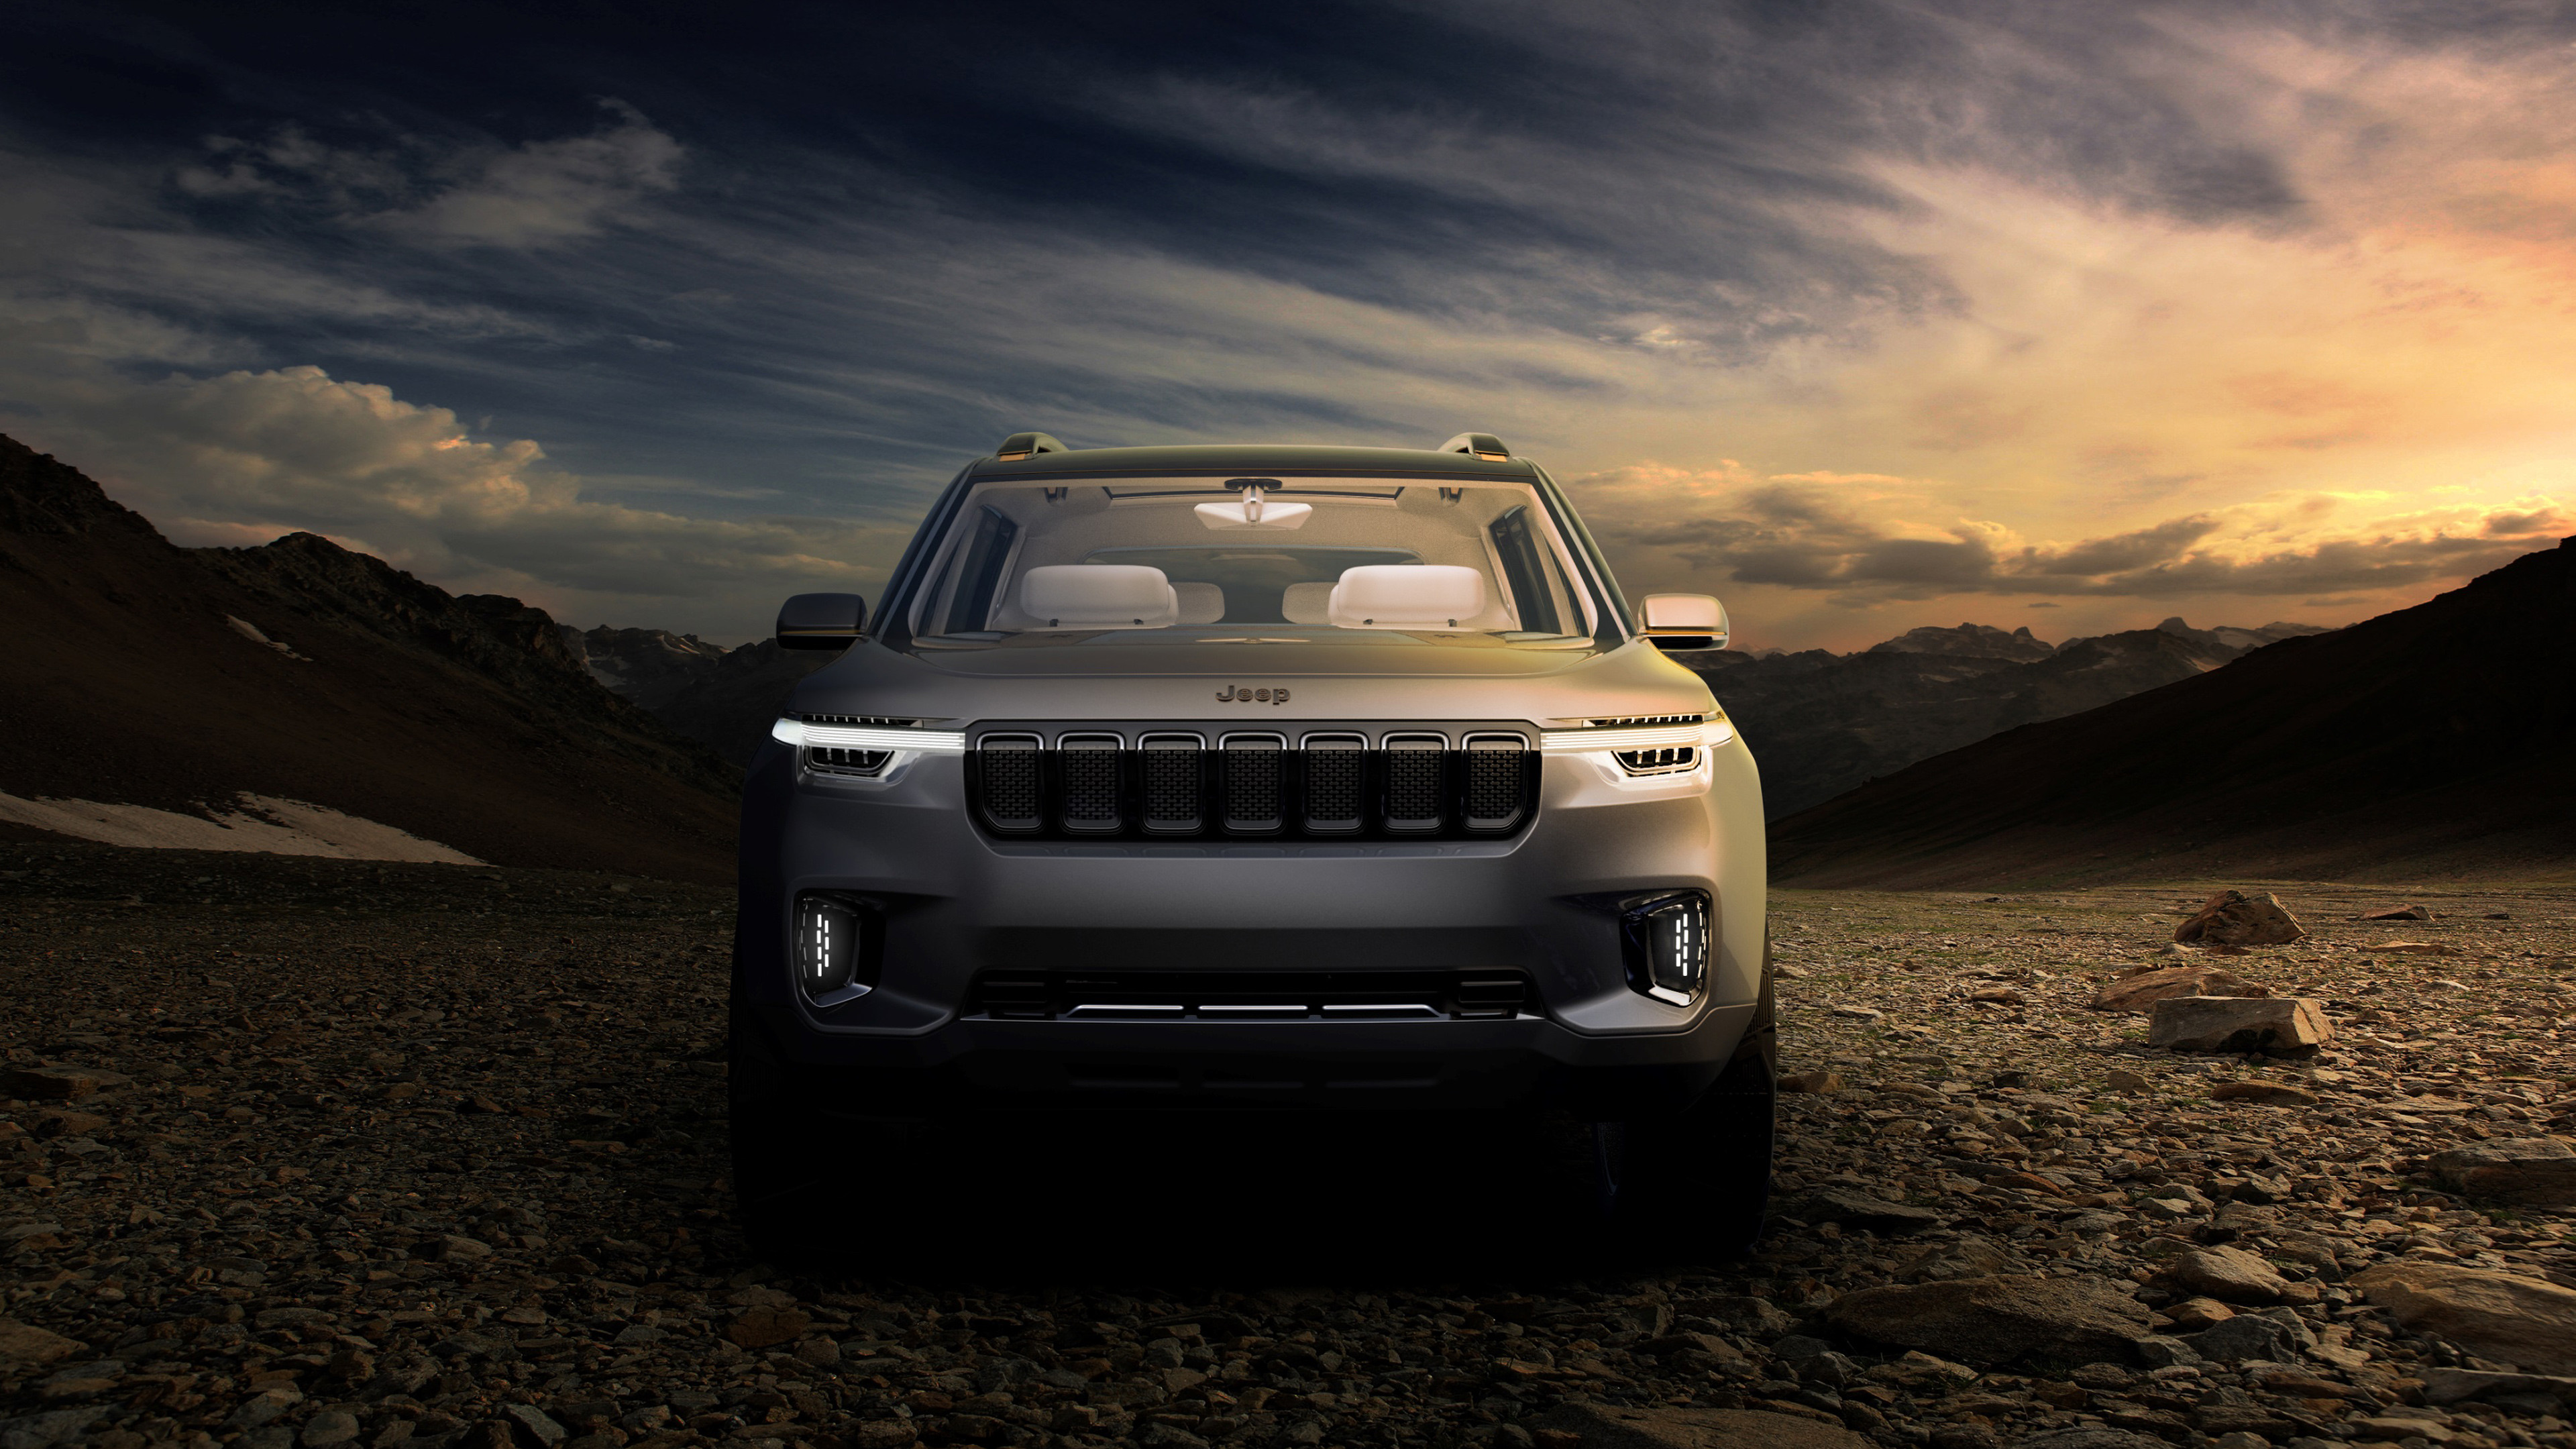 Jeep Iphone wallpapers - HD wallpaper Collections ...